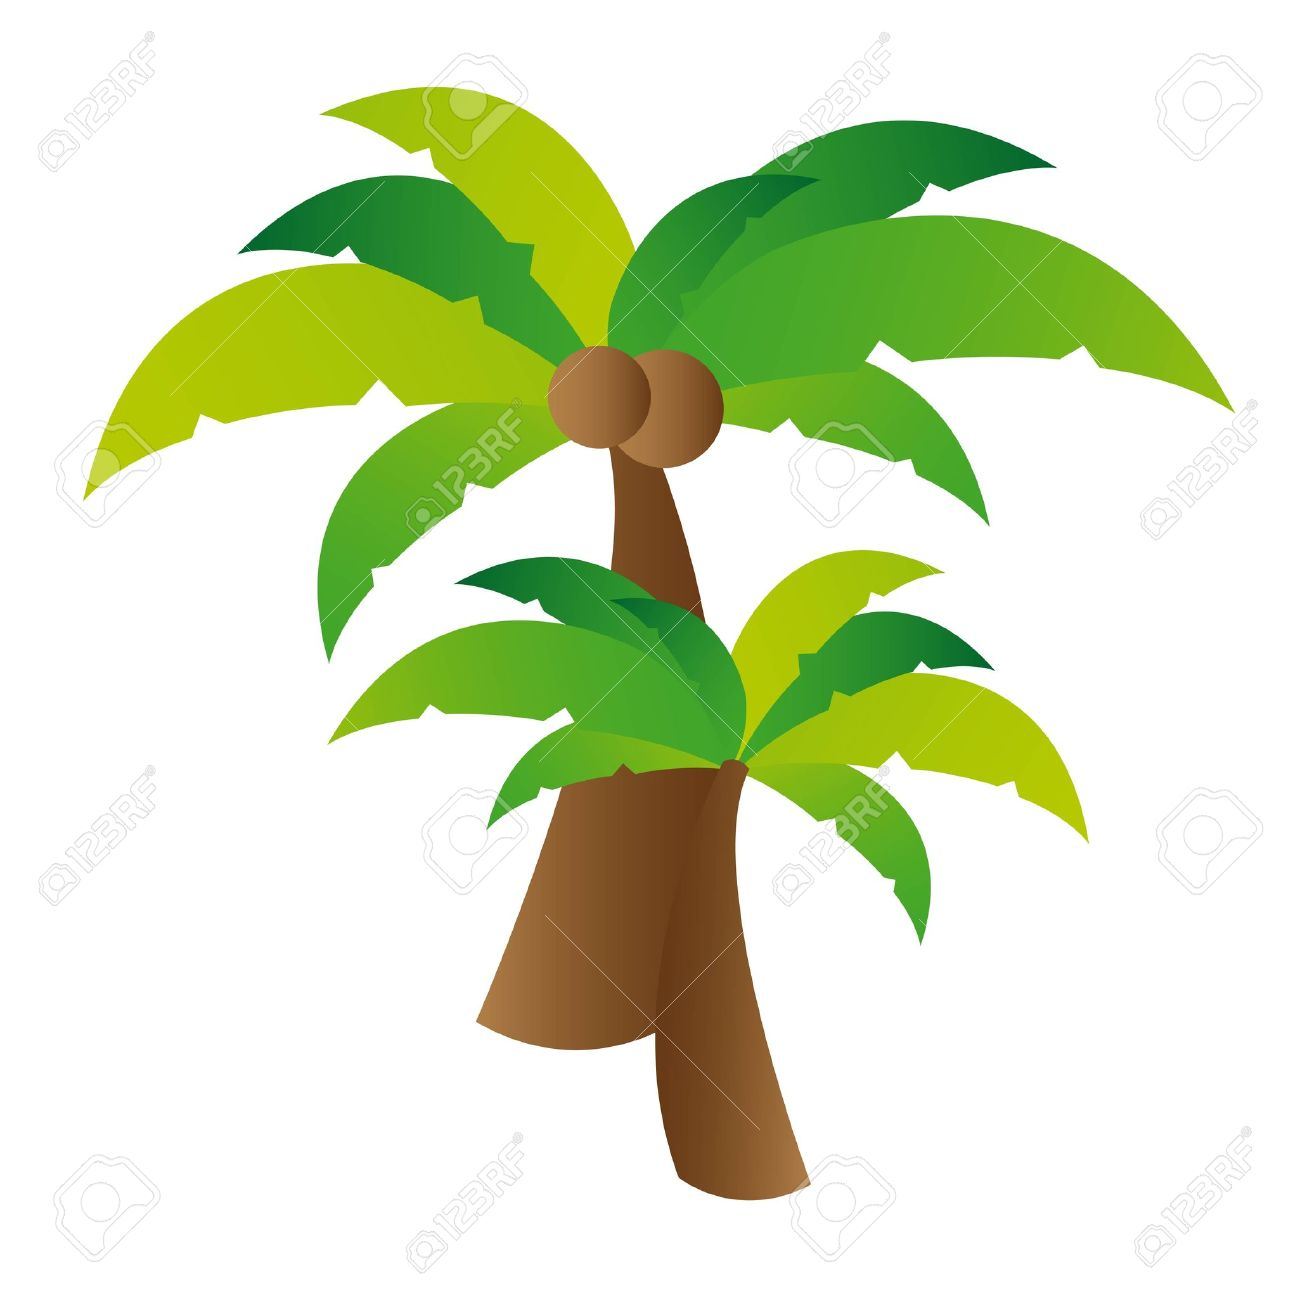 Coconut Palm Tree Illustration Over White Background. Vector ...